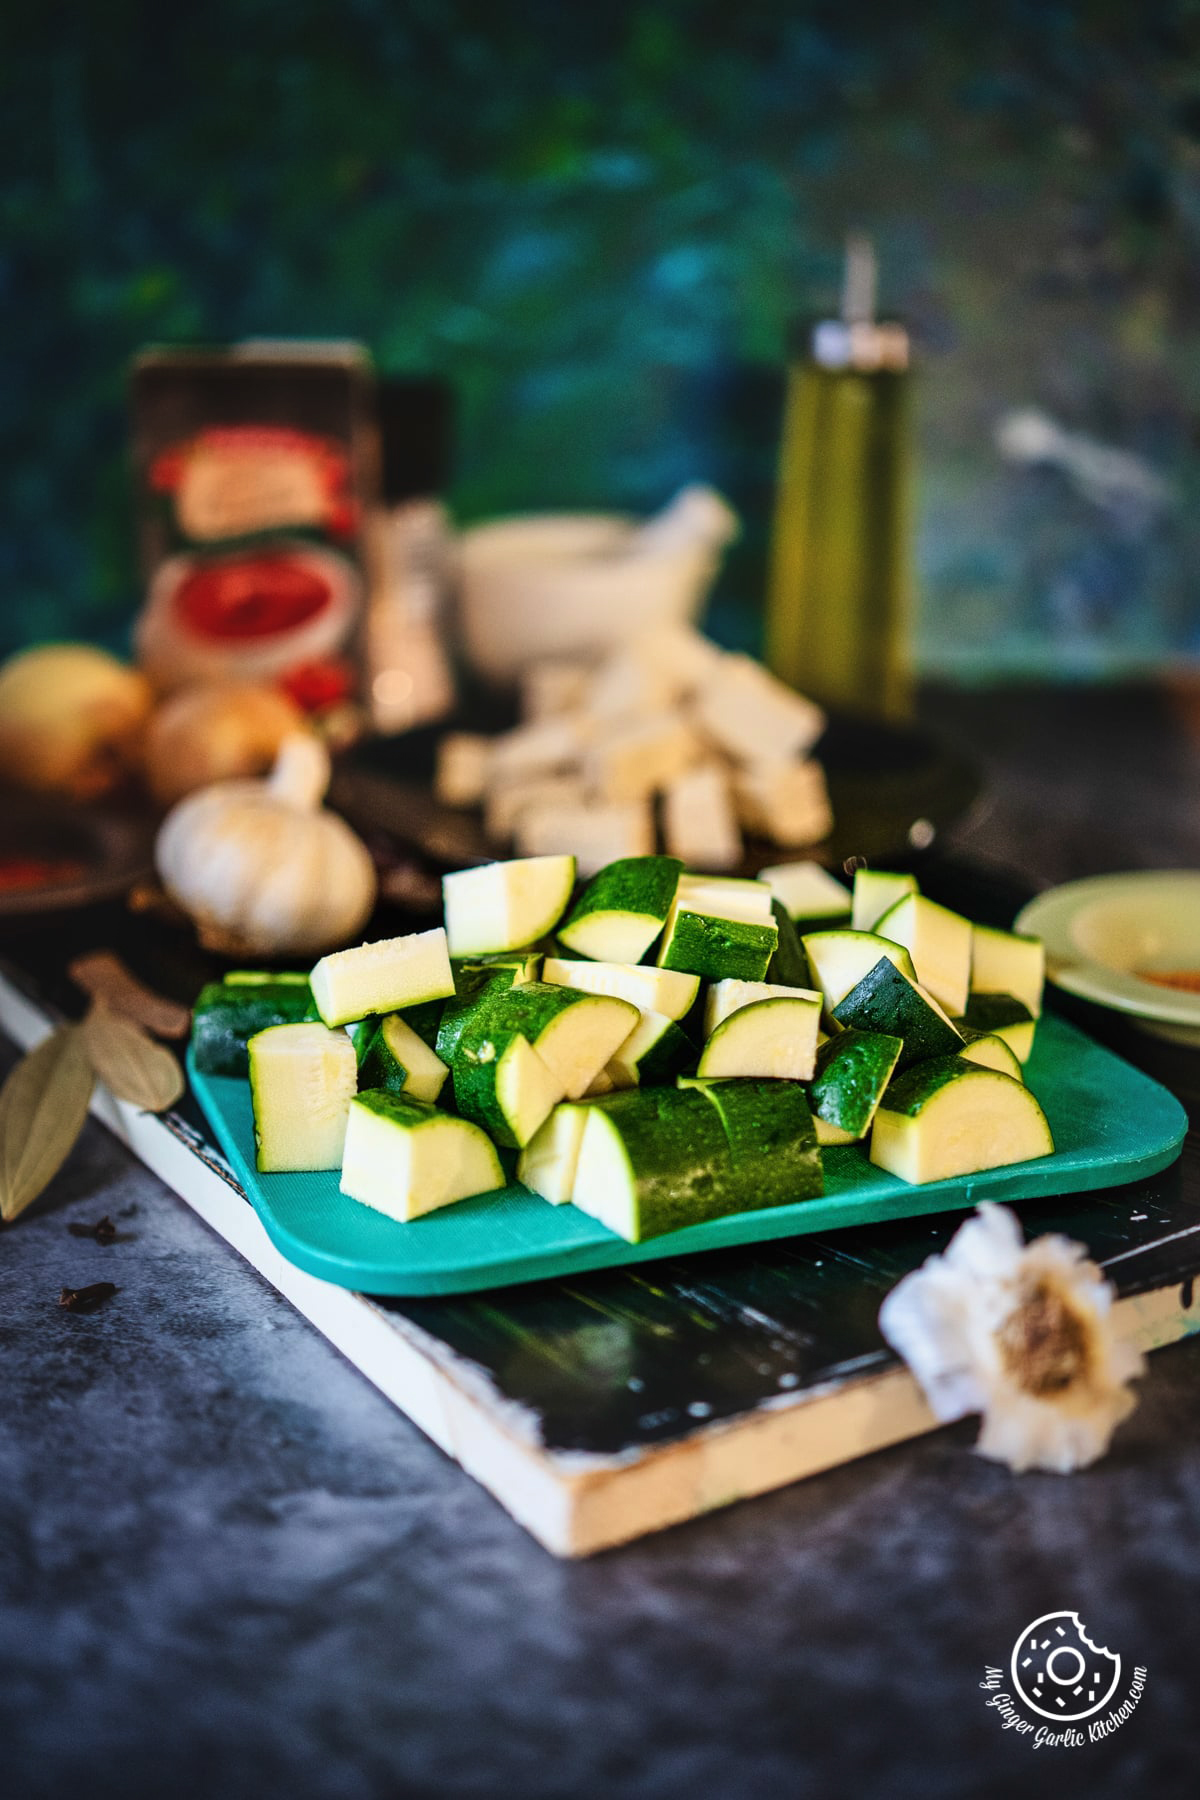 diced zucchini on a green chopping board